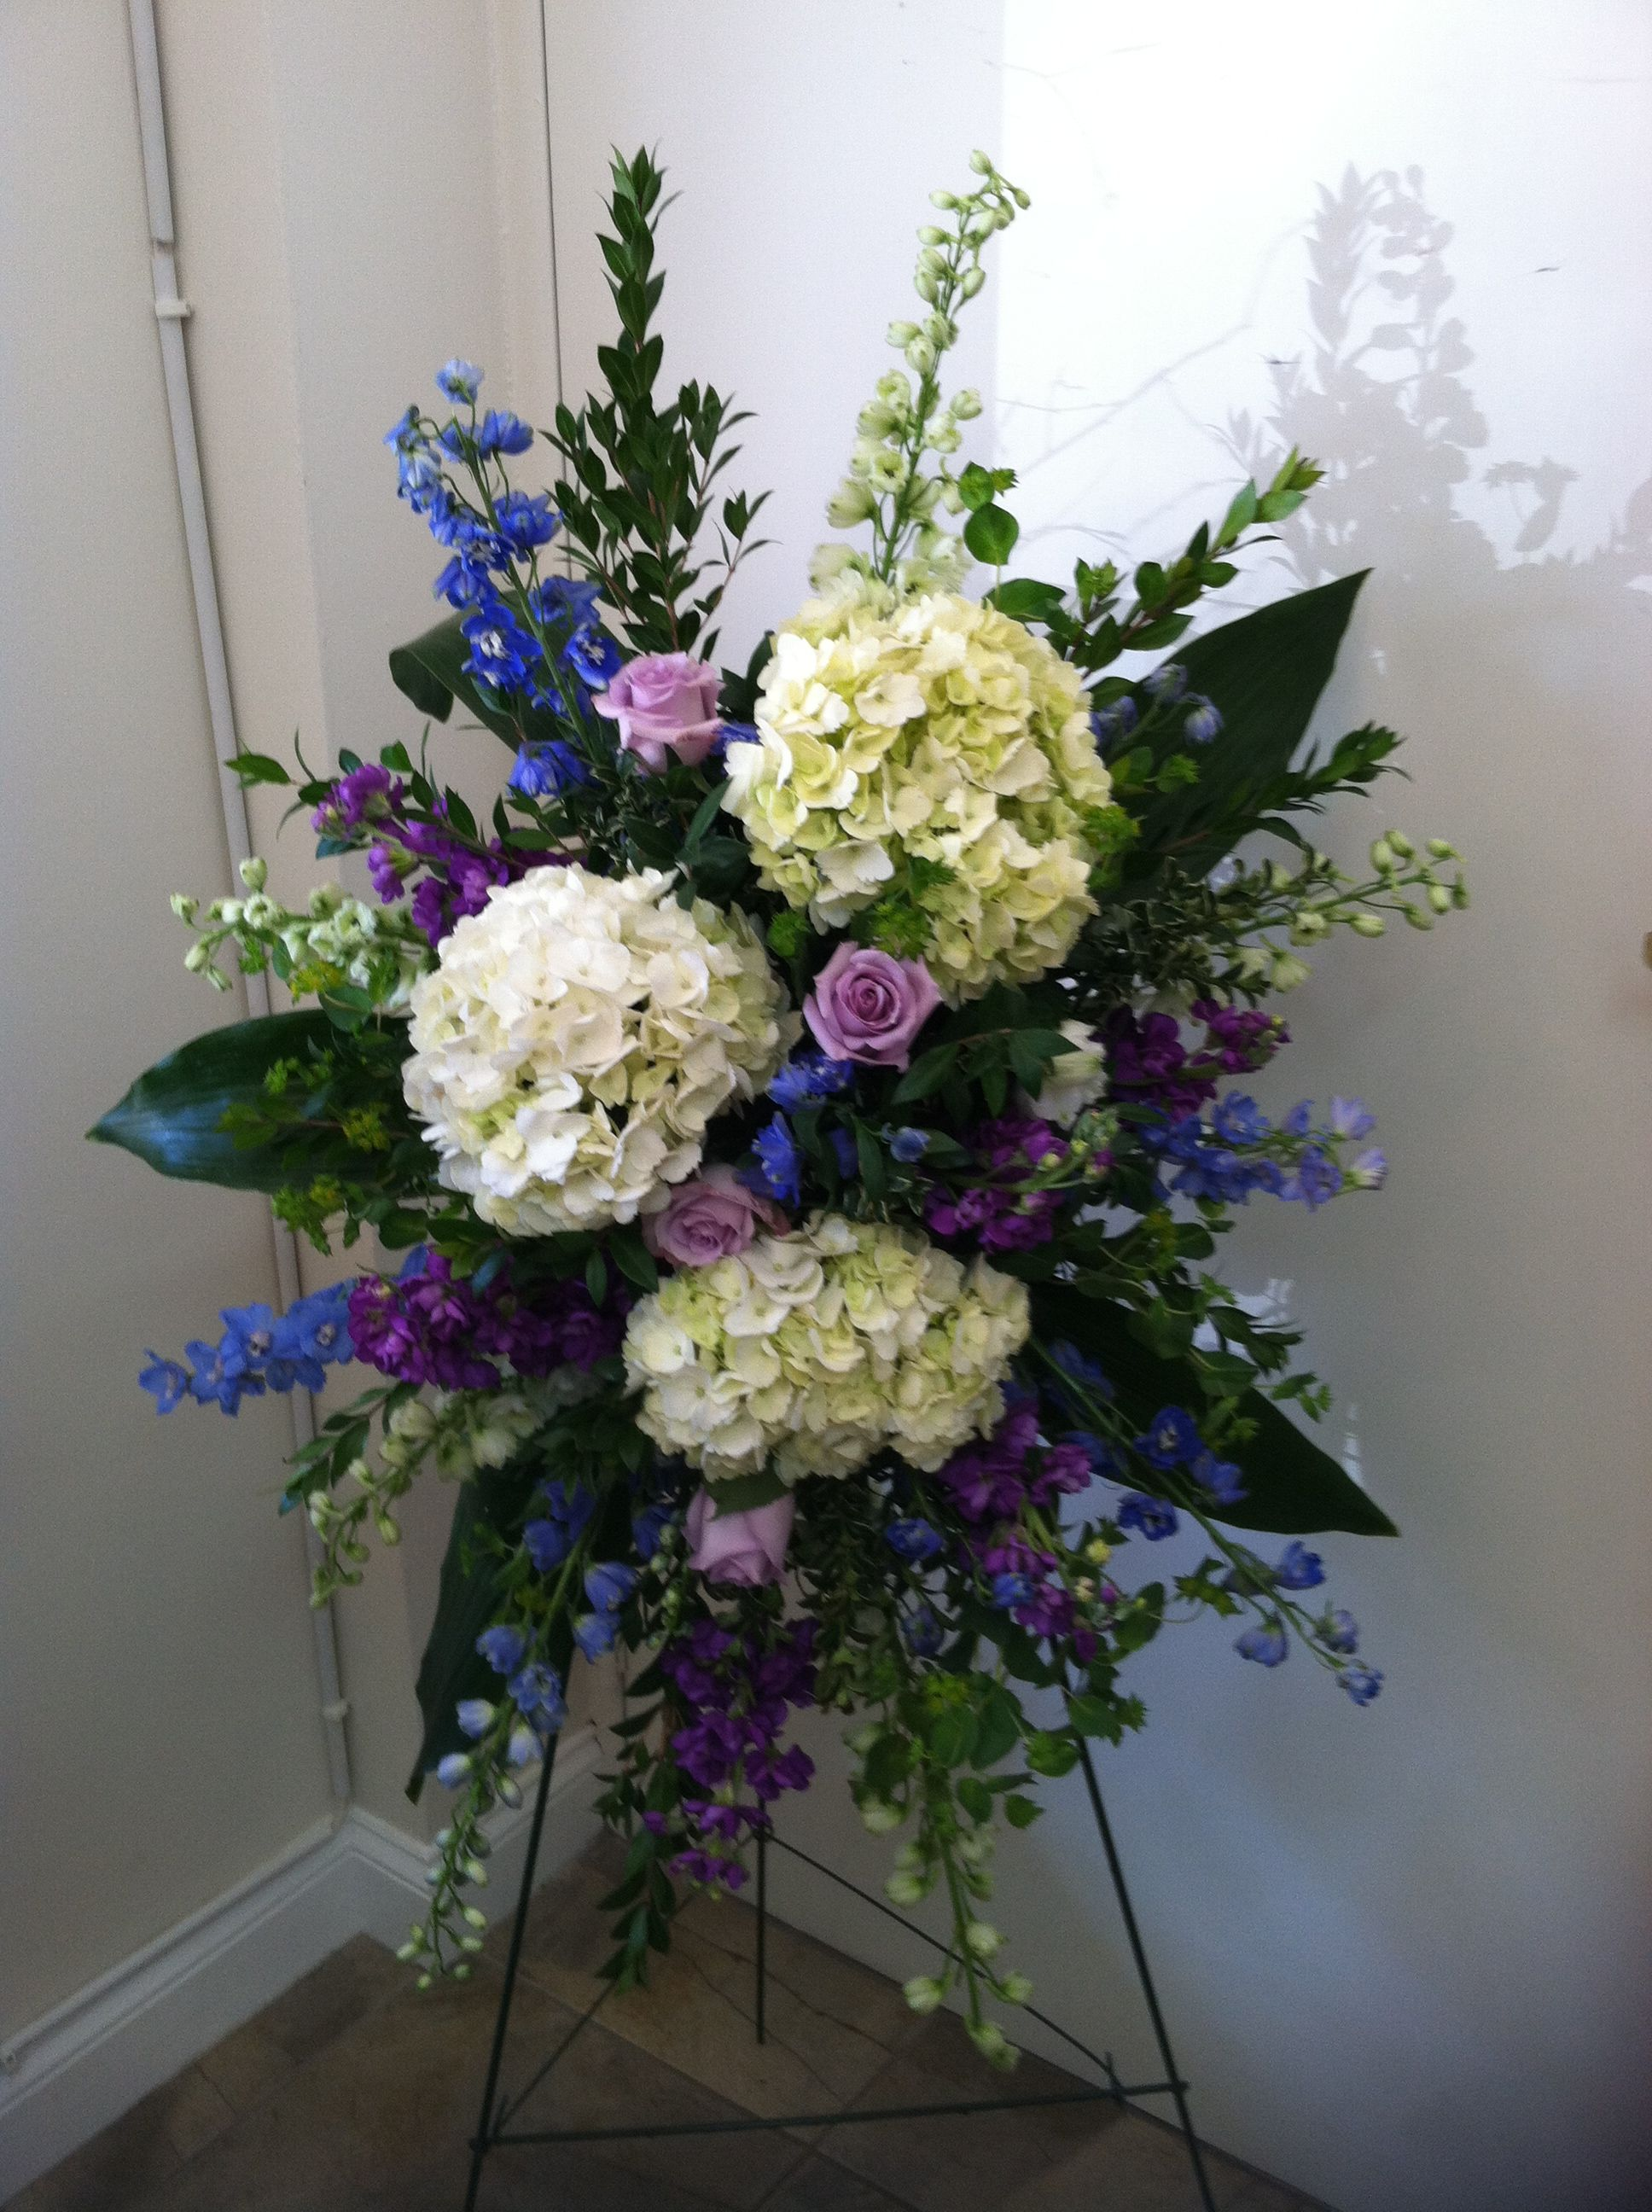 Easel Featuring White Hydrangea Dark Blue Triton Delphinium Ocean Song Roses White River Hybrid With Images Memorial Flowers Funeral Floral Funeral Flower Arrangements